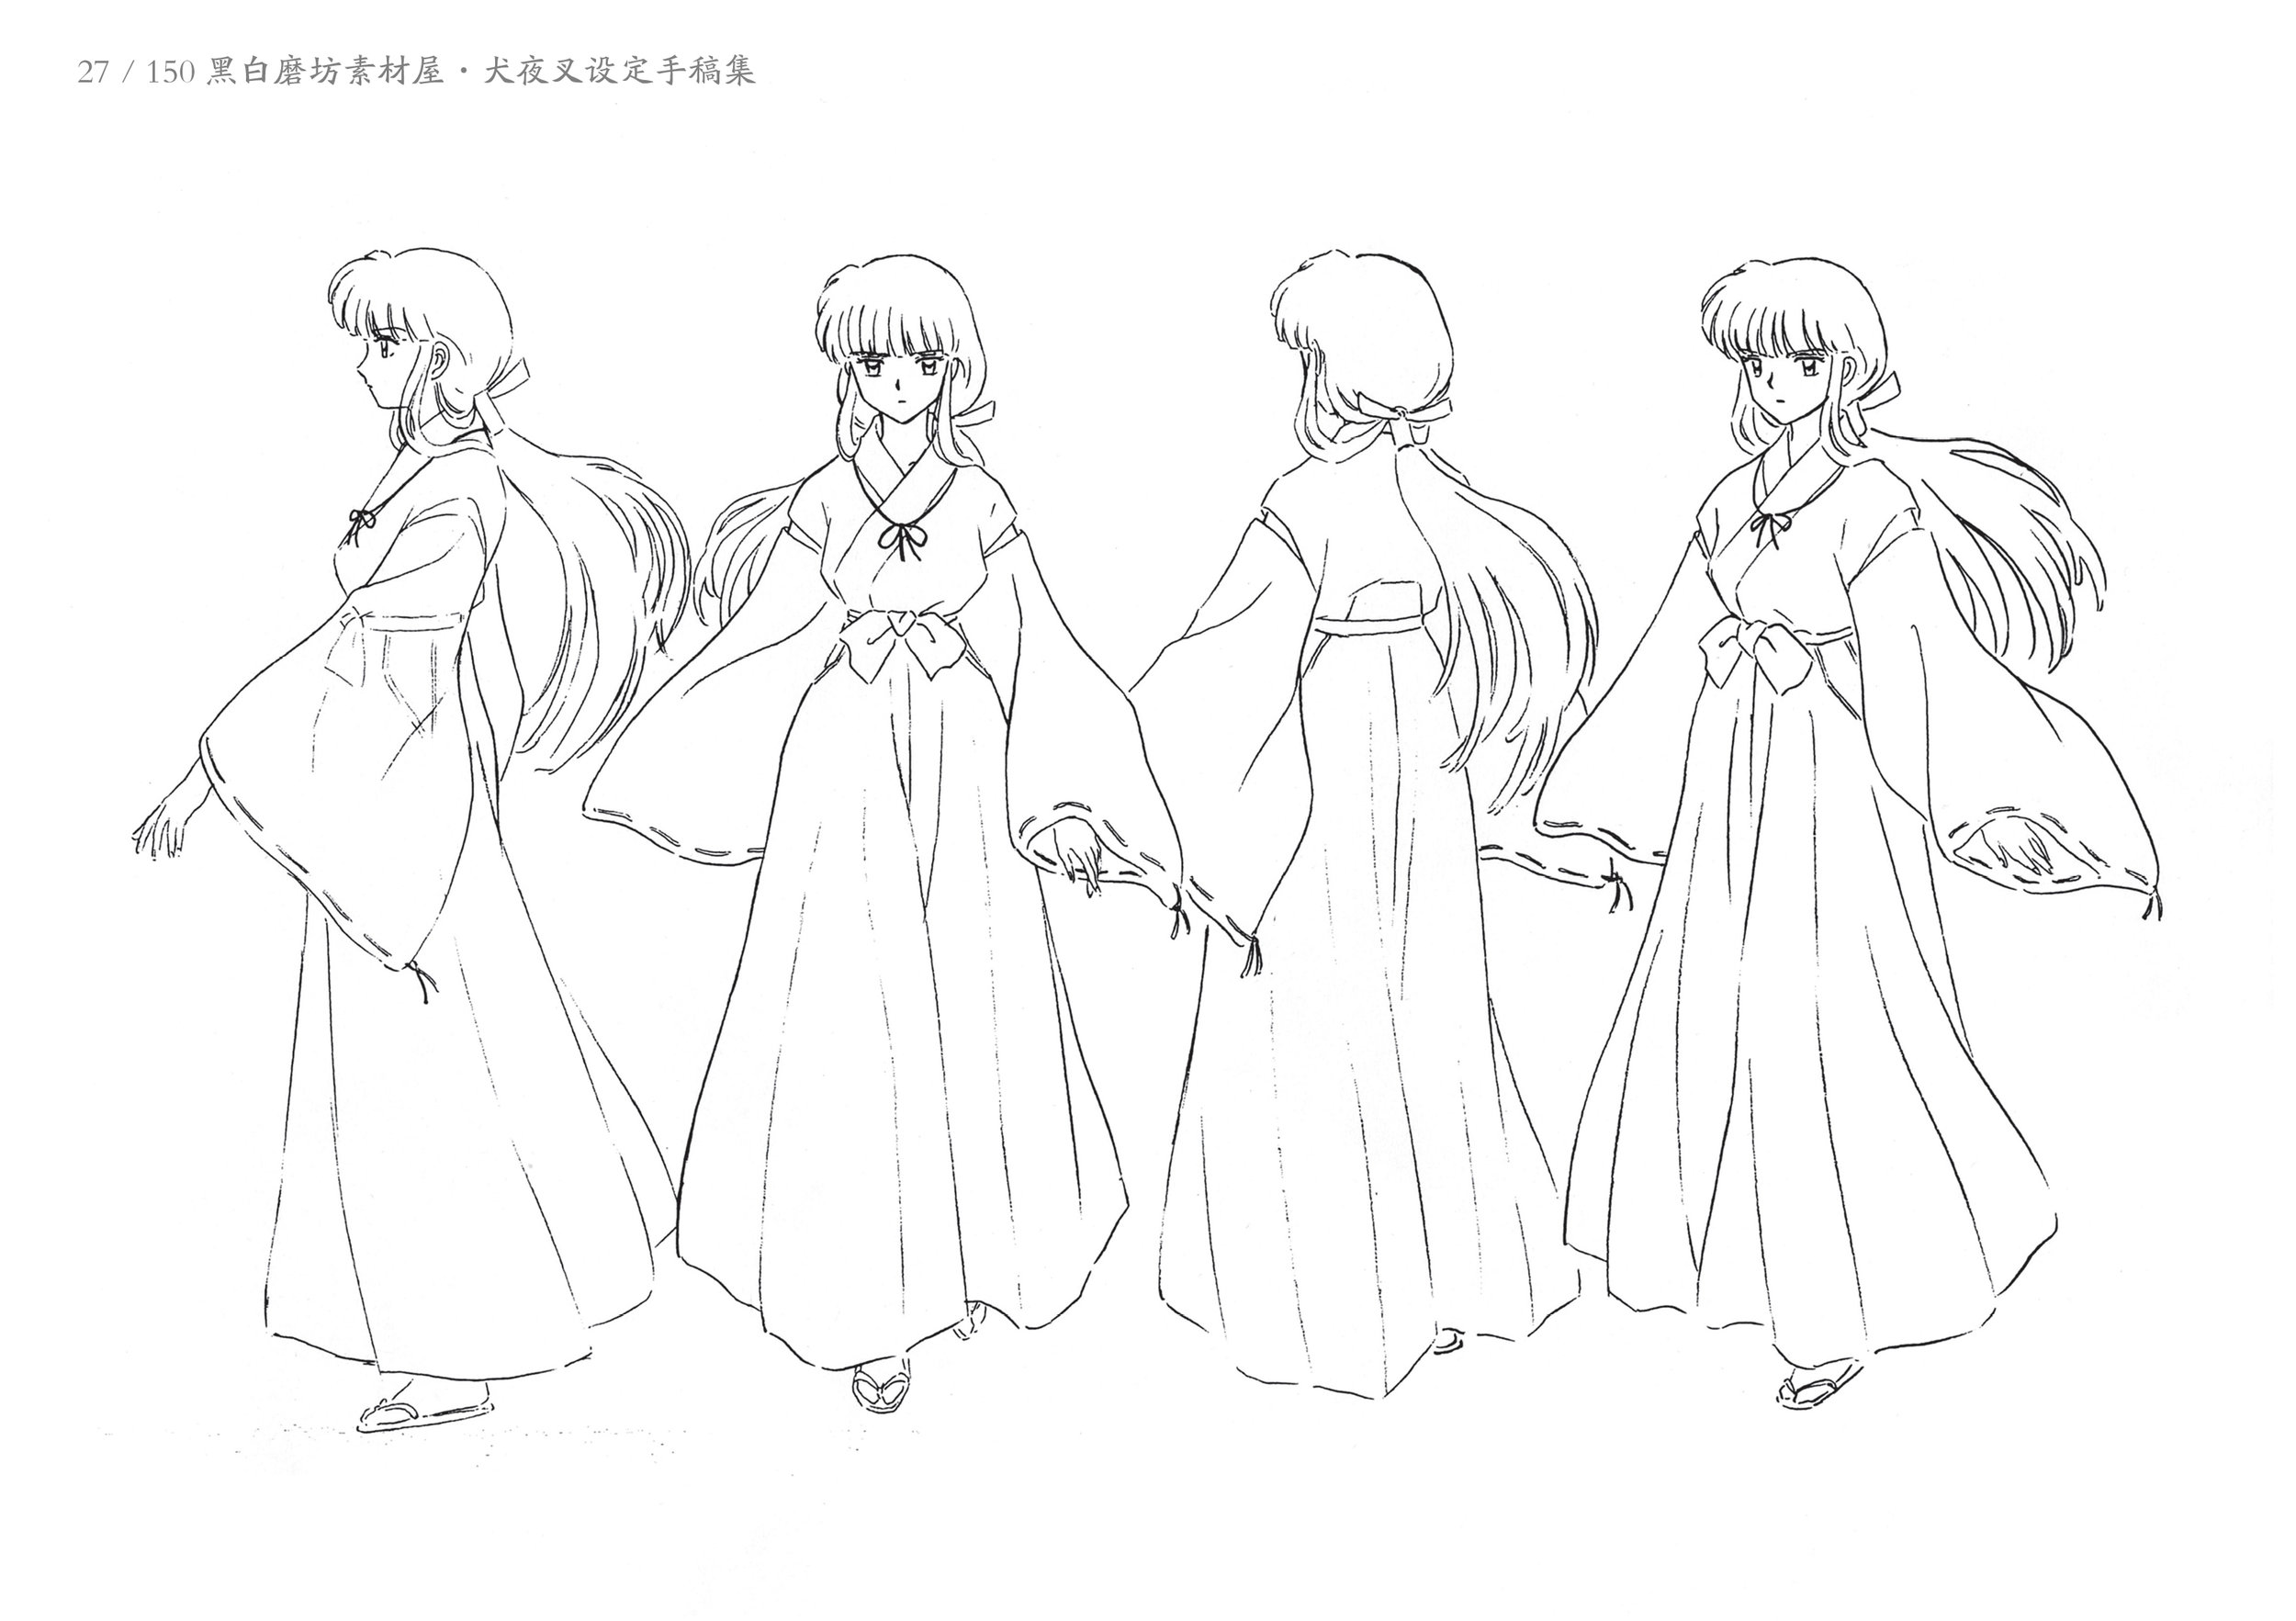 Art of the Inuyasha A - 21.jpg